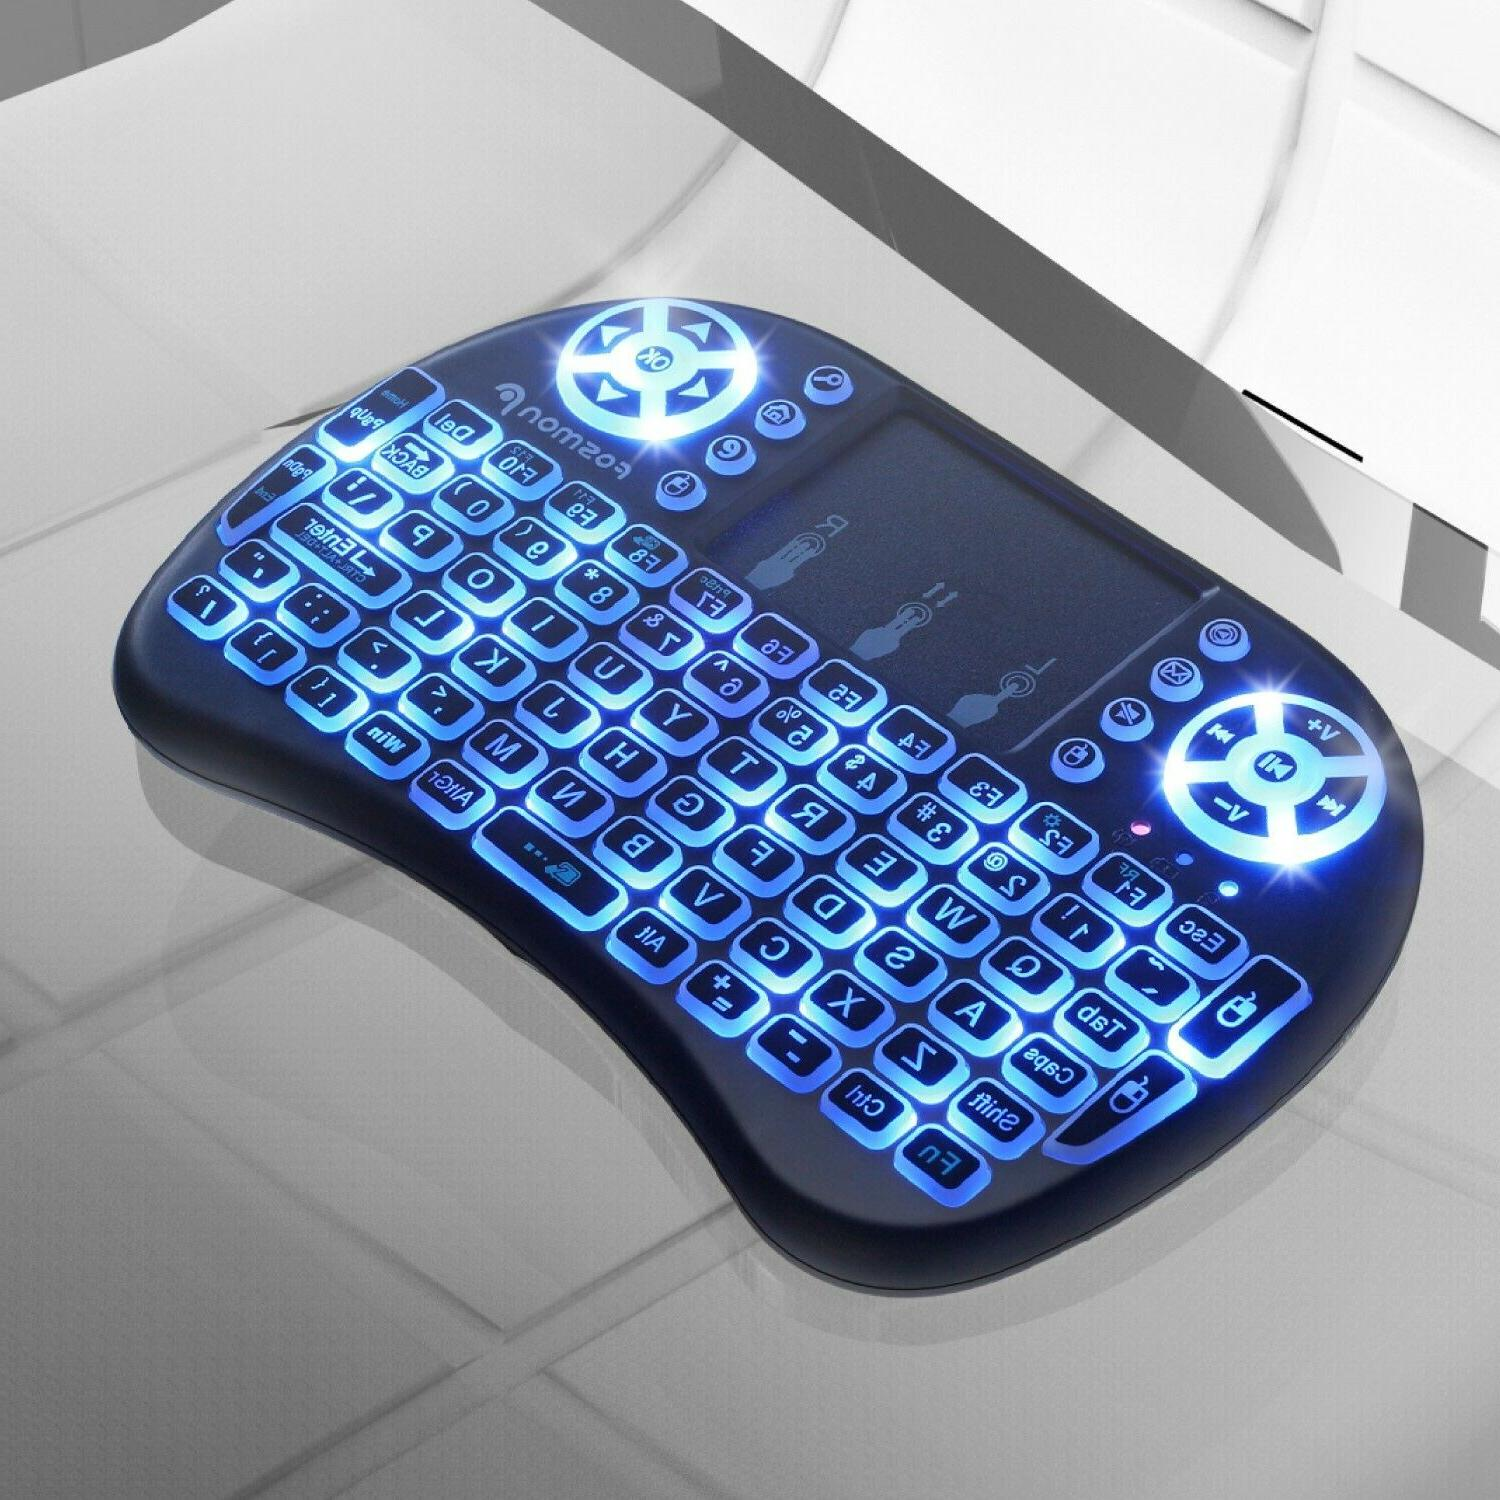 Fosmon 2.4GHz Keyboard Touchpad Android Windows